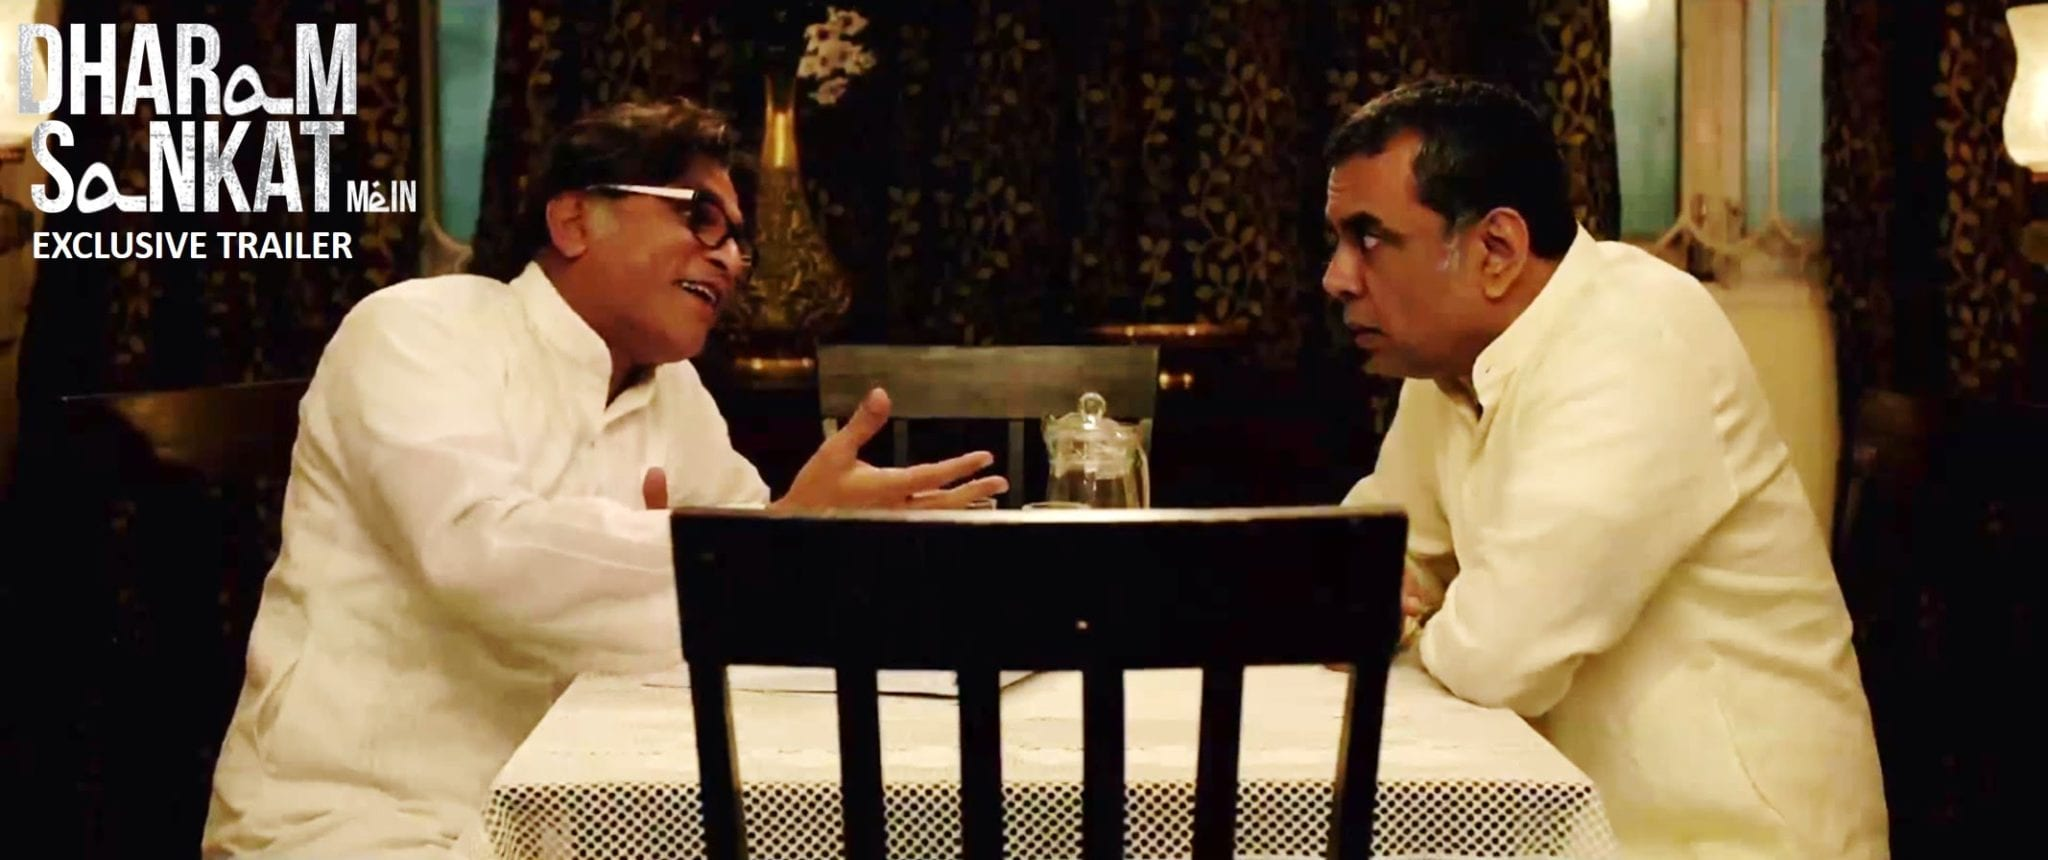 Dharam Sankat Mein Trailer : Official Theatrical Trailer